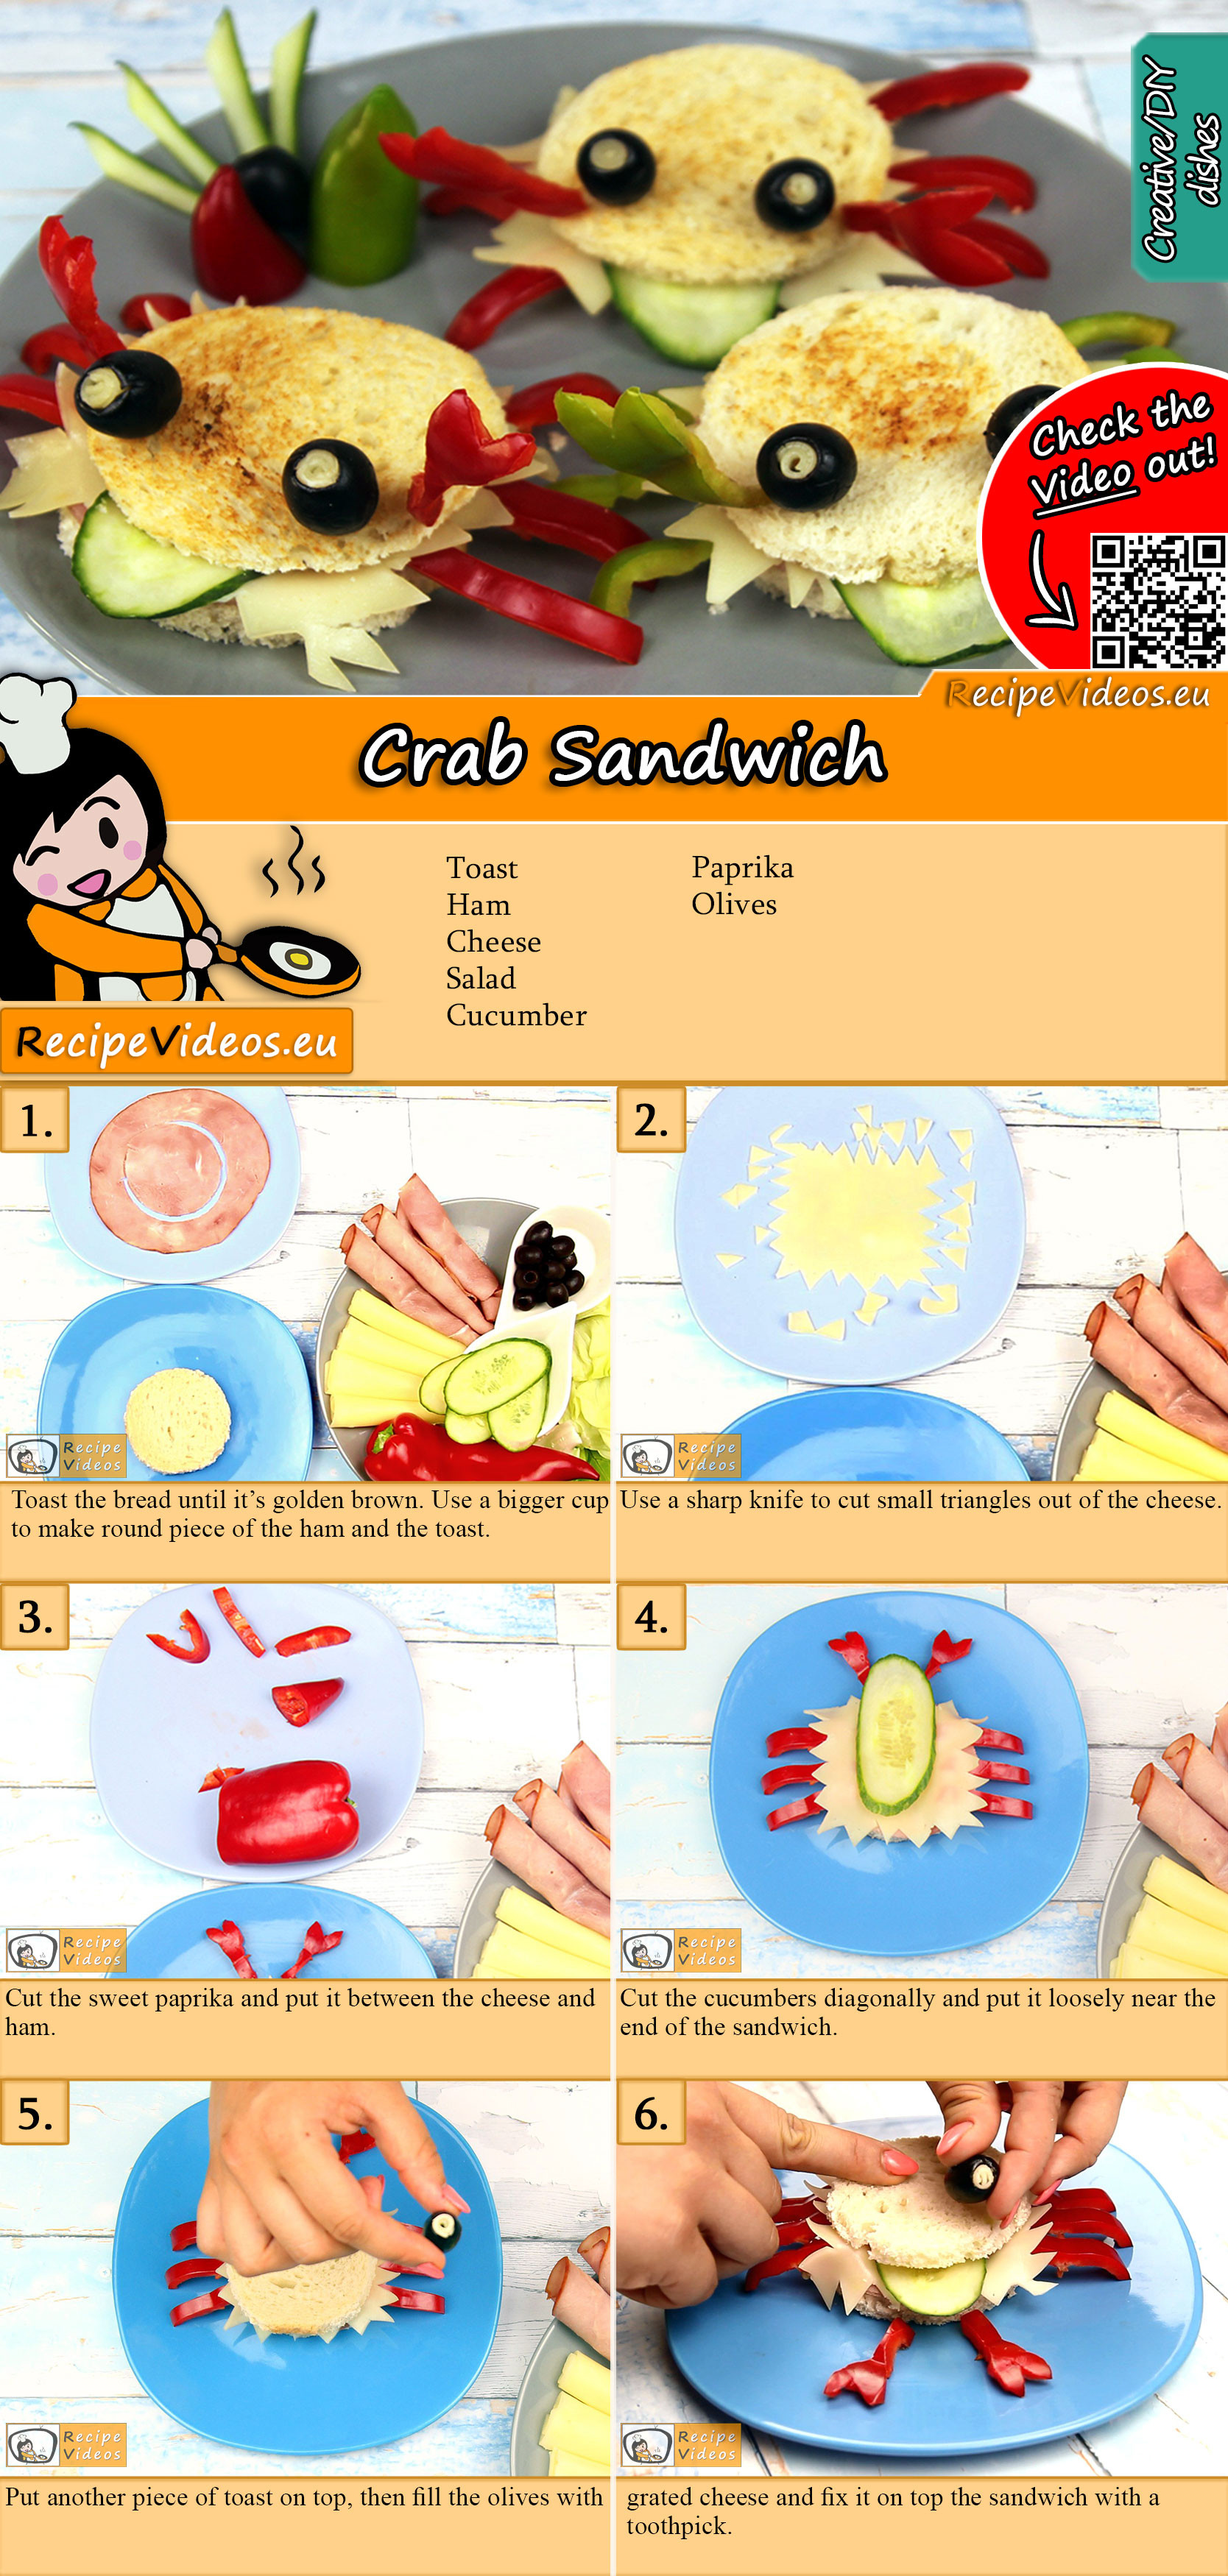 Crab sandwich recipe with video